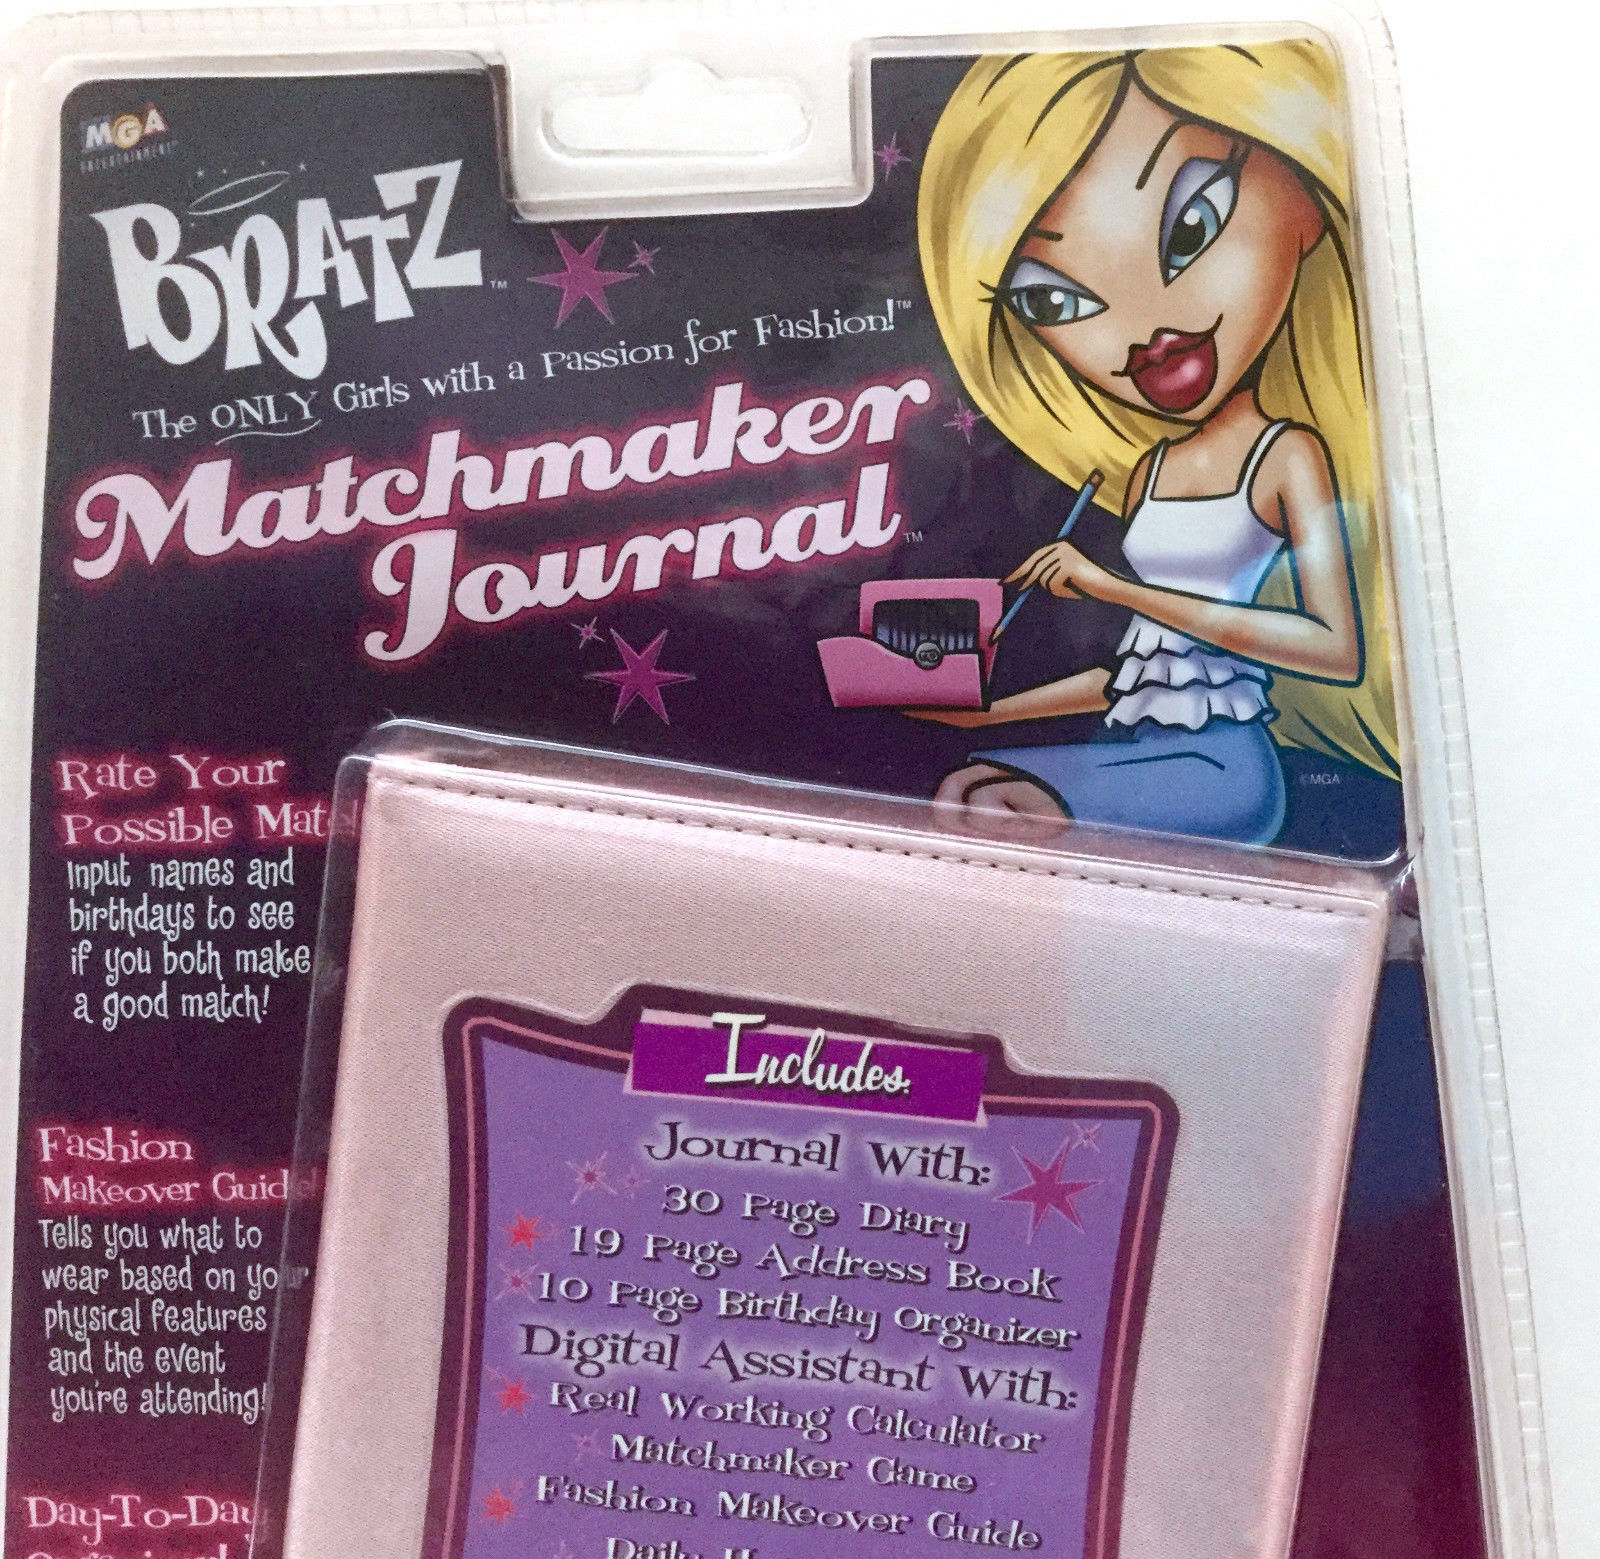 Bratz Matchmaker Journal and Digital Assistant Vintage Collectible VTG RARE NEW